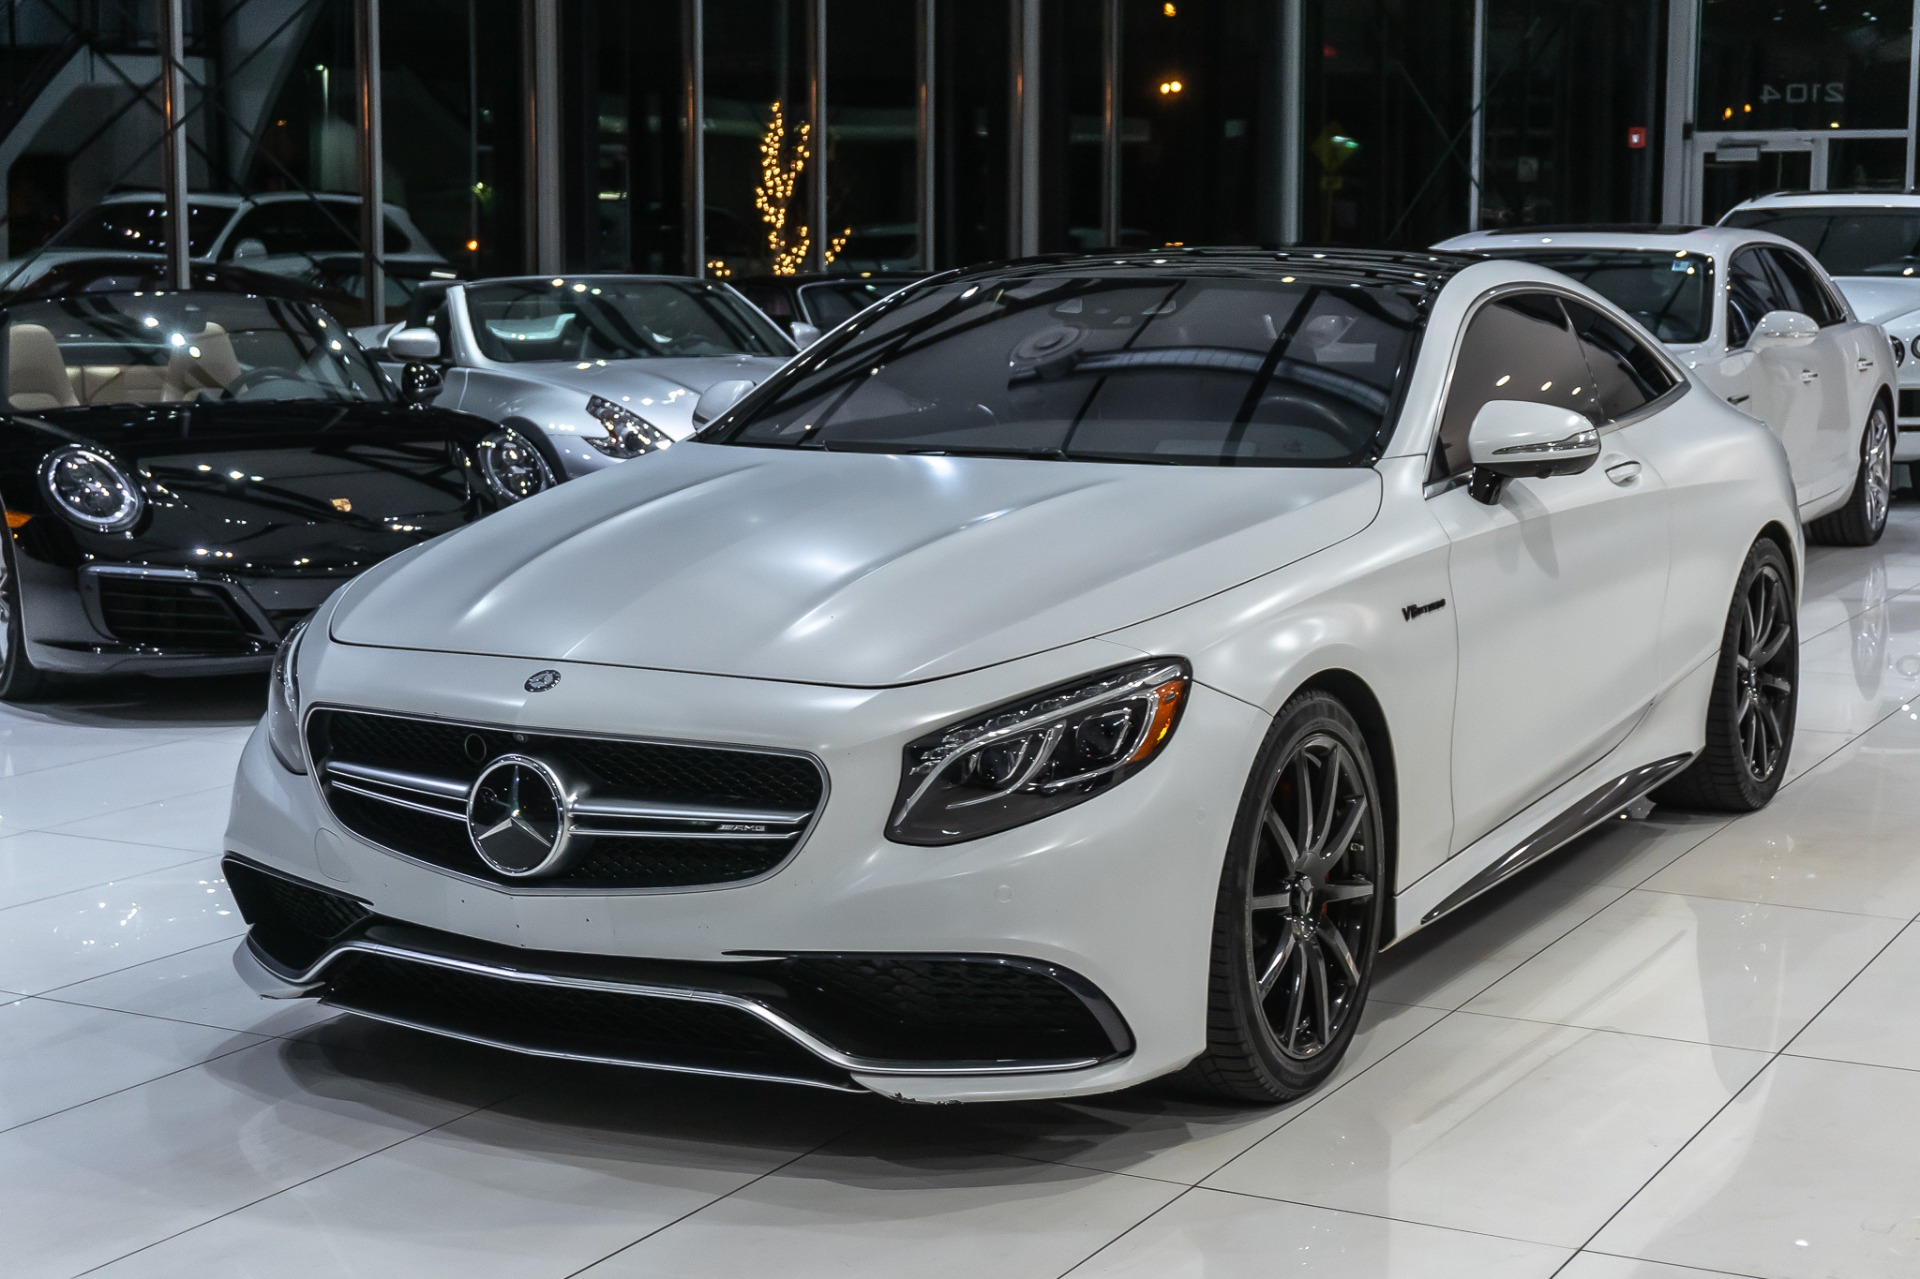 Used 2015 Mercedes Benz S63 Amg Coupe 4matic Pearl White Vinyl Wrap Driver Assist Burmester Distronic Plus For Sale Special Pricing Chicago Motor Cars Stock 16991